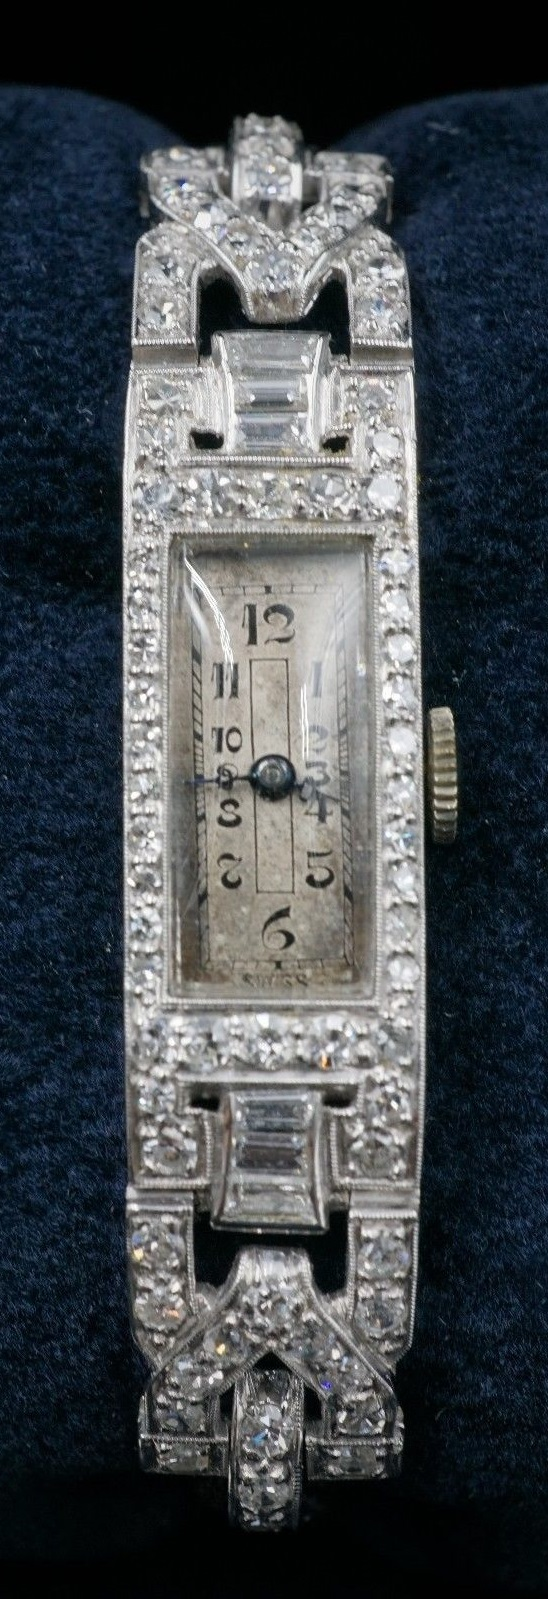 Watch: Edwardian era Rado brand 17 jewel mechanical movement watch with black cord band, fastening with a fold-over locking clasp | 68 diamonds | 1.32 carats | Appraisal: $19,950